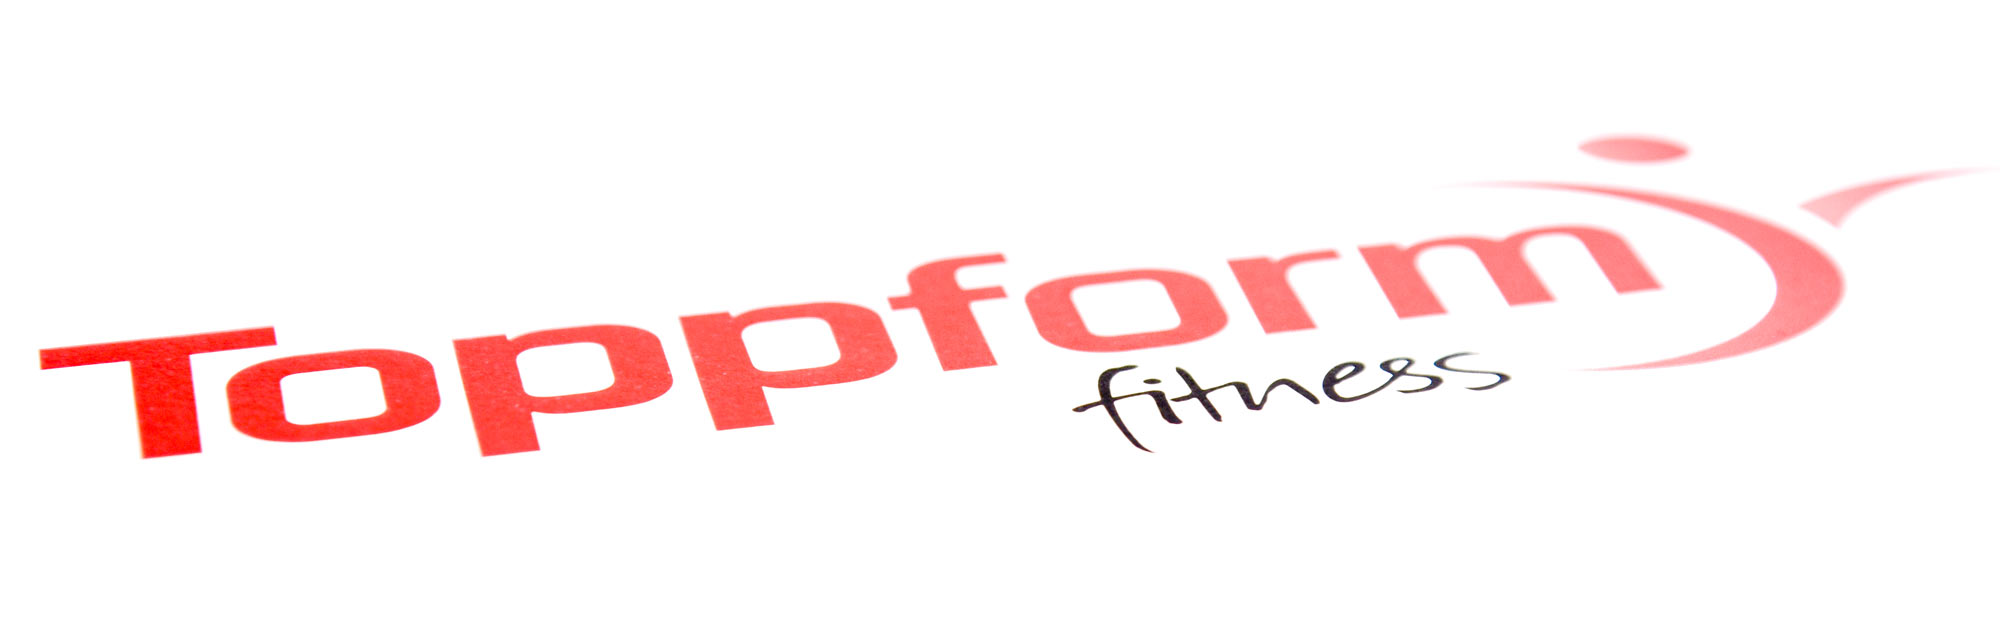 Toppform logo utformet av PS Press Reklame Moss